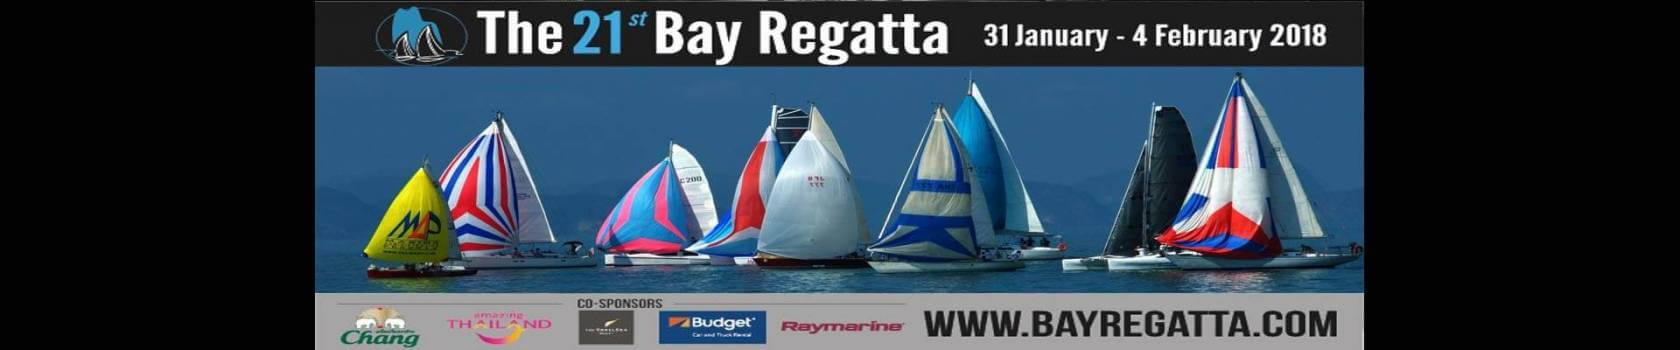 The 21st Bay Regatta Phuket